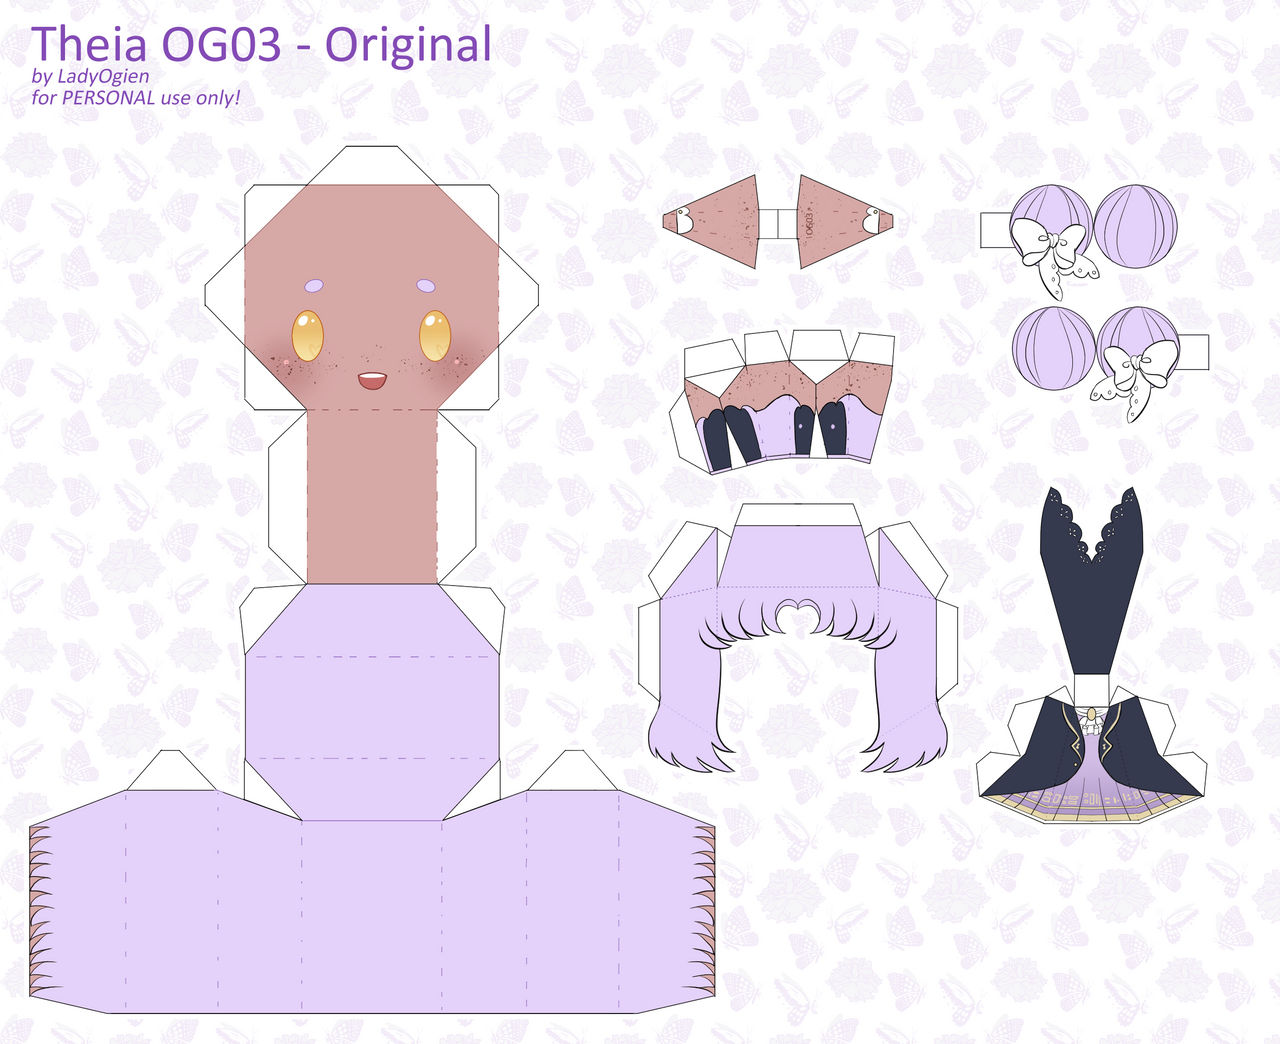 Theia OG03 Papercraft